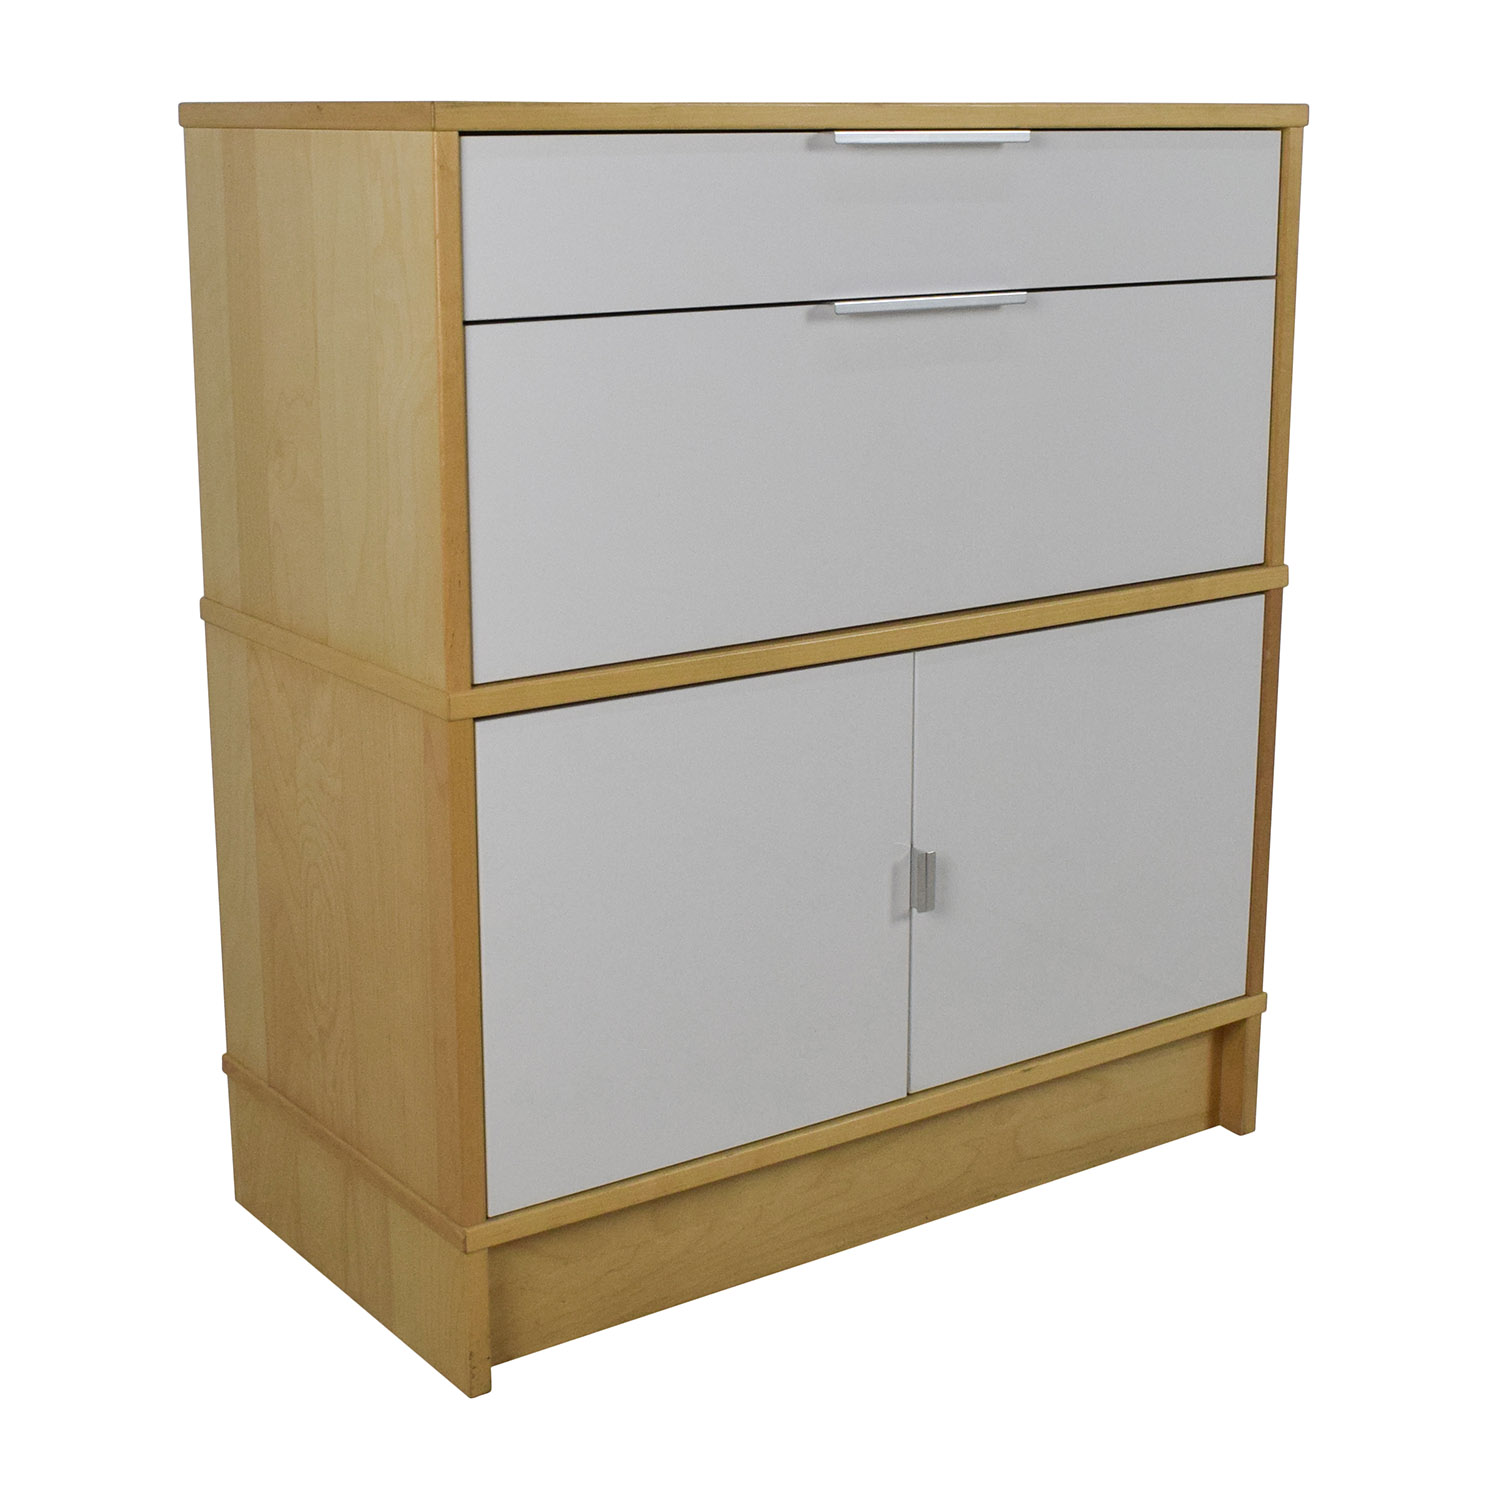 IKEA Storage Unit / Cabinets & Sideboards